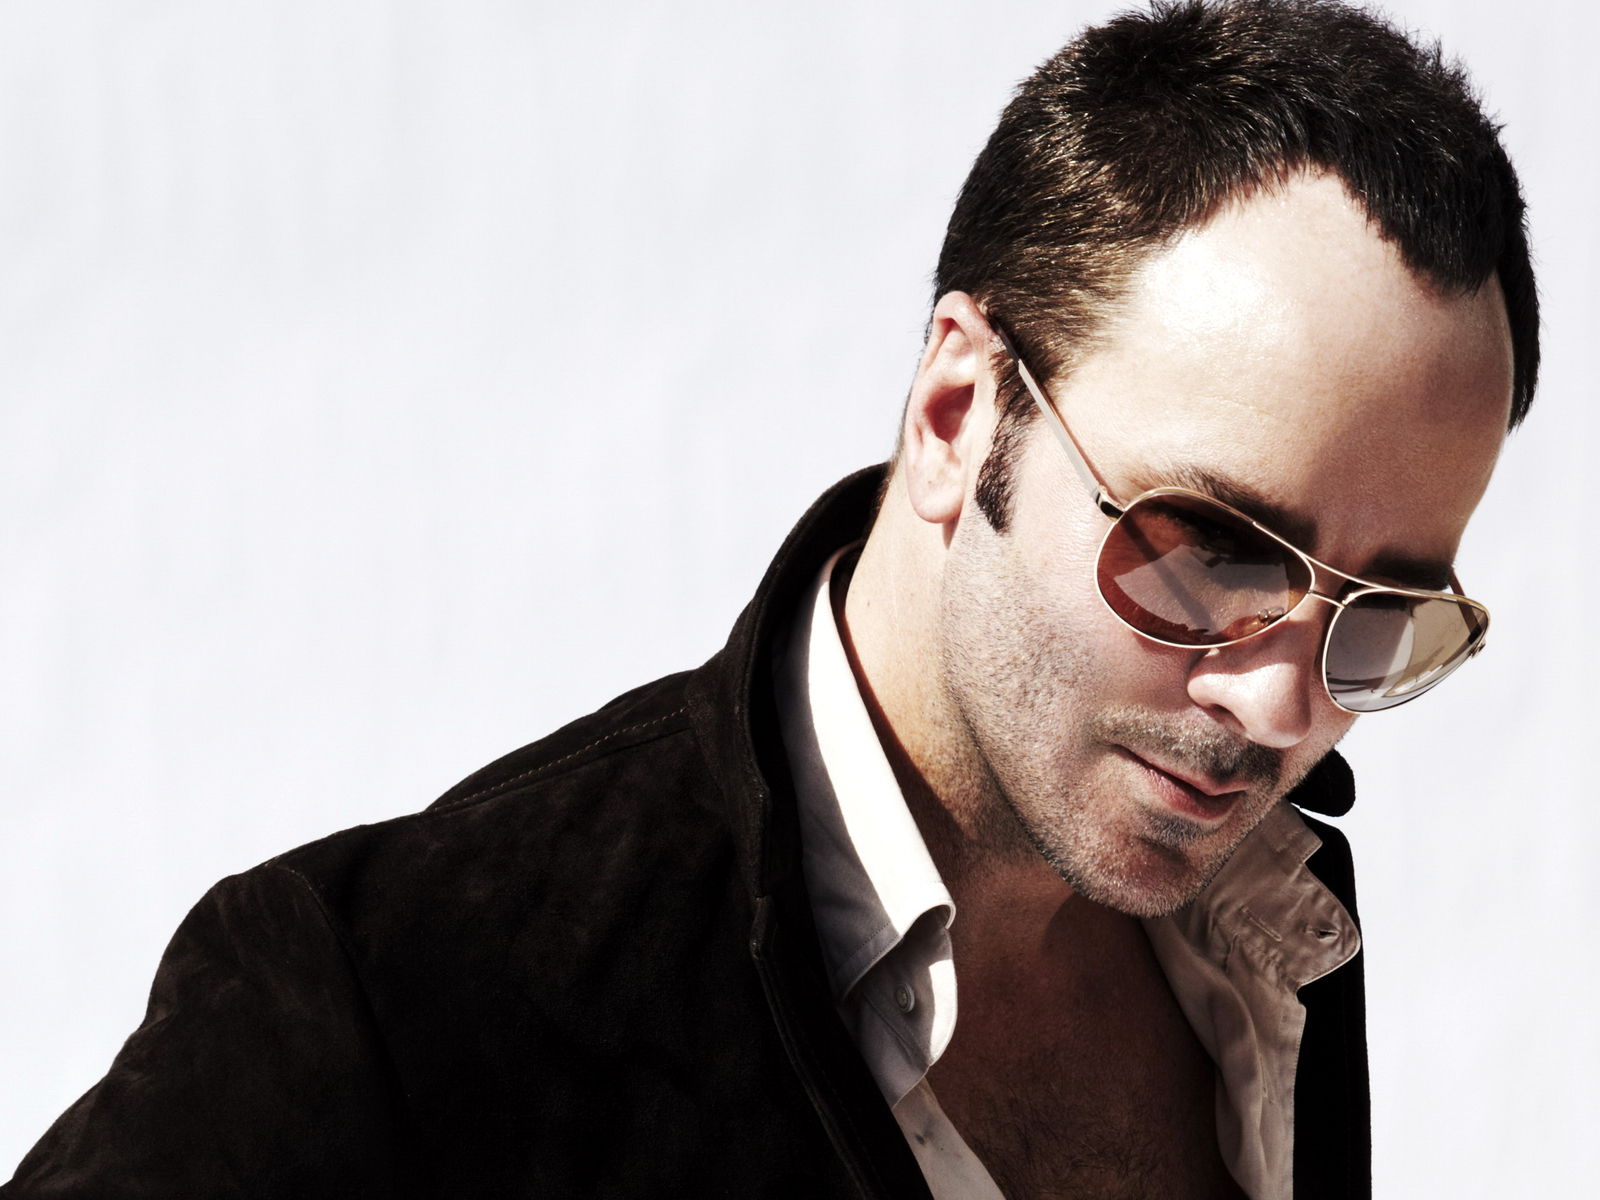 tom ford glasses wallpaper 59358